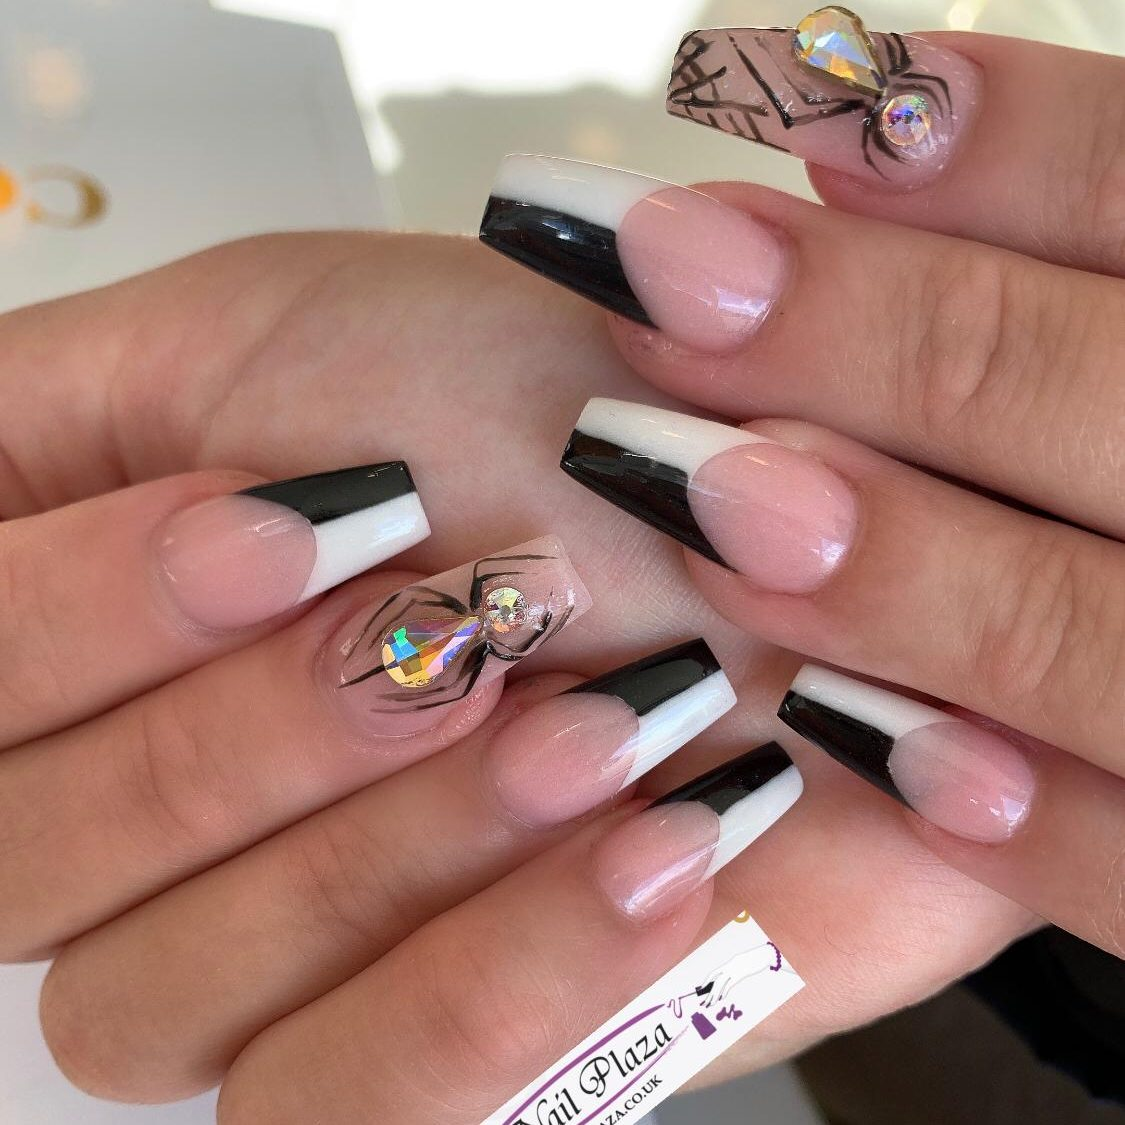 nail-plaza-twickenham-nail-design-061120-8